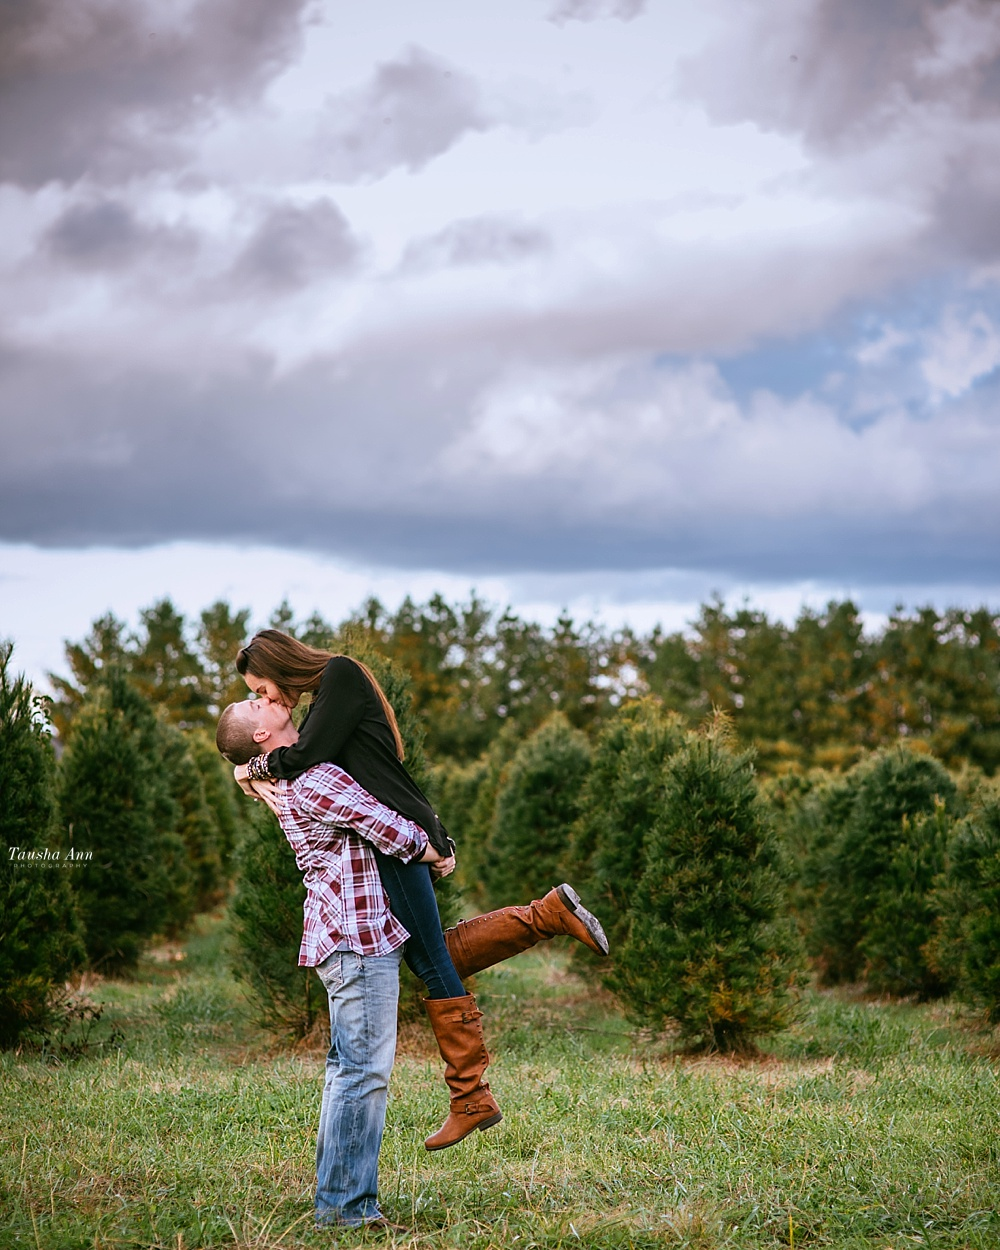 Surprise Proposal at Country Cove Christmas Tree Farm. Kissing, backlit by the sun and beautiful cloudy sky. Picking girl up. Foot kicked back.